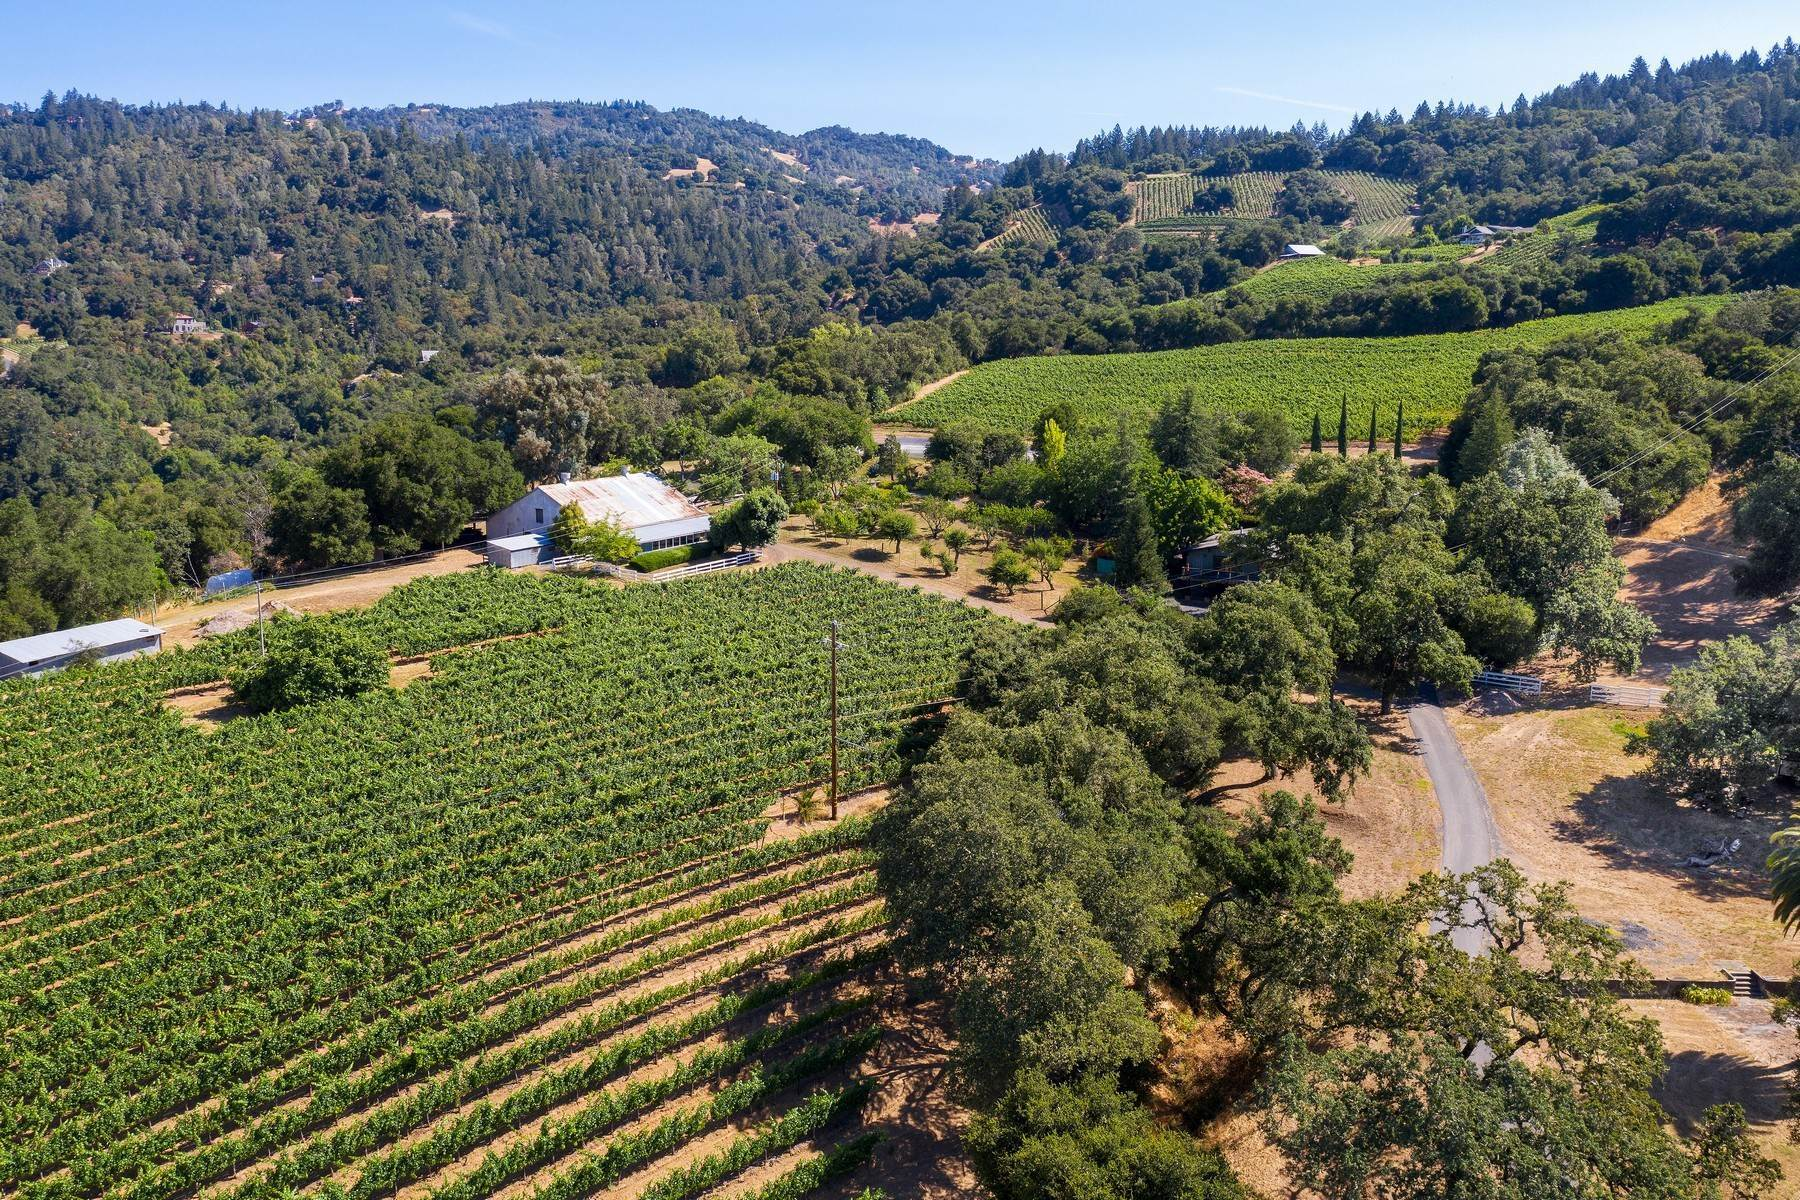 Vineyard Real Estate для того Продажа на Cloverdale Wine Ranch 25900 Highland Ranch Road Cloverdale, Калифорния 95425 Соединенные Штаты